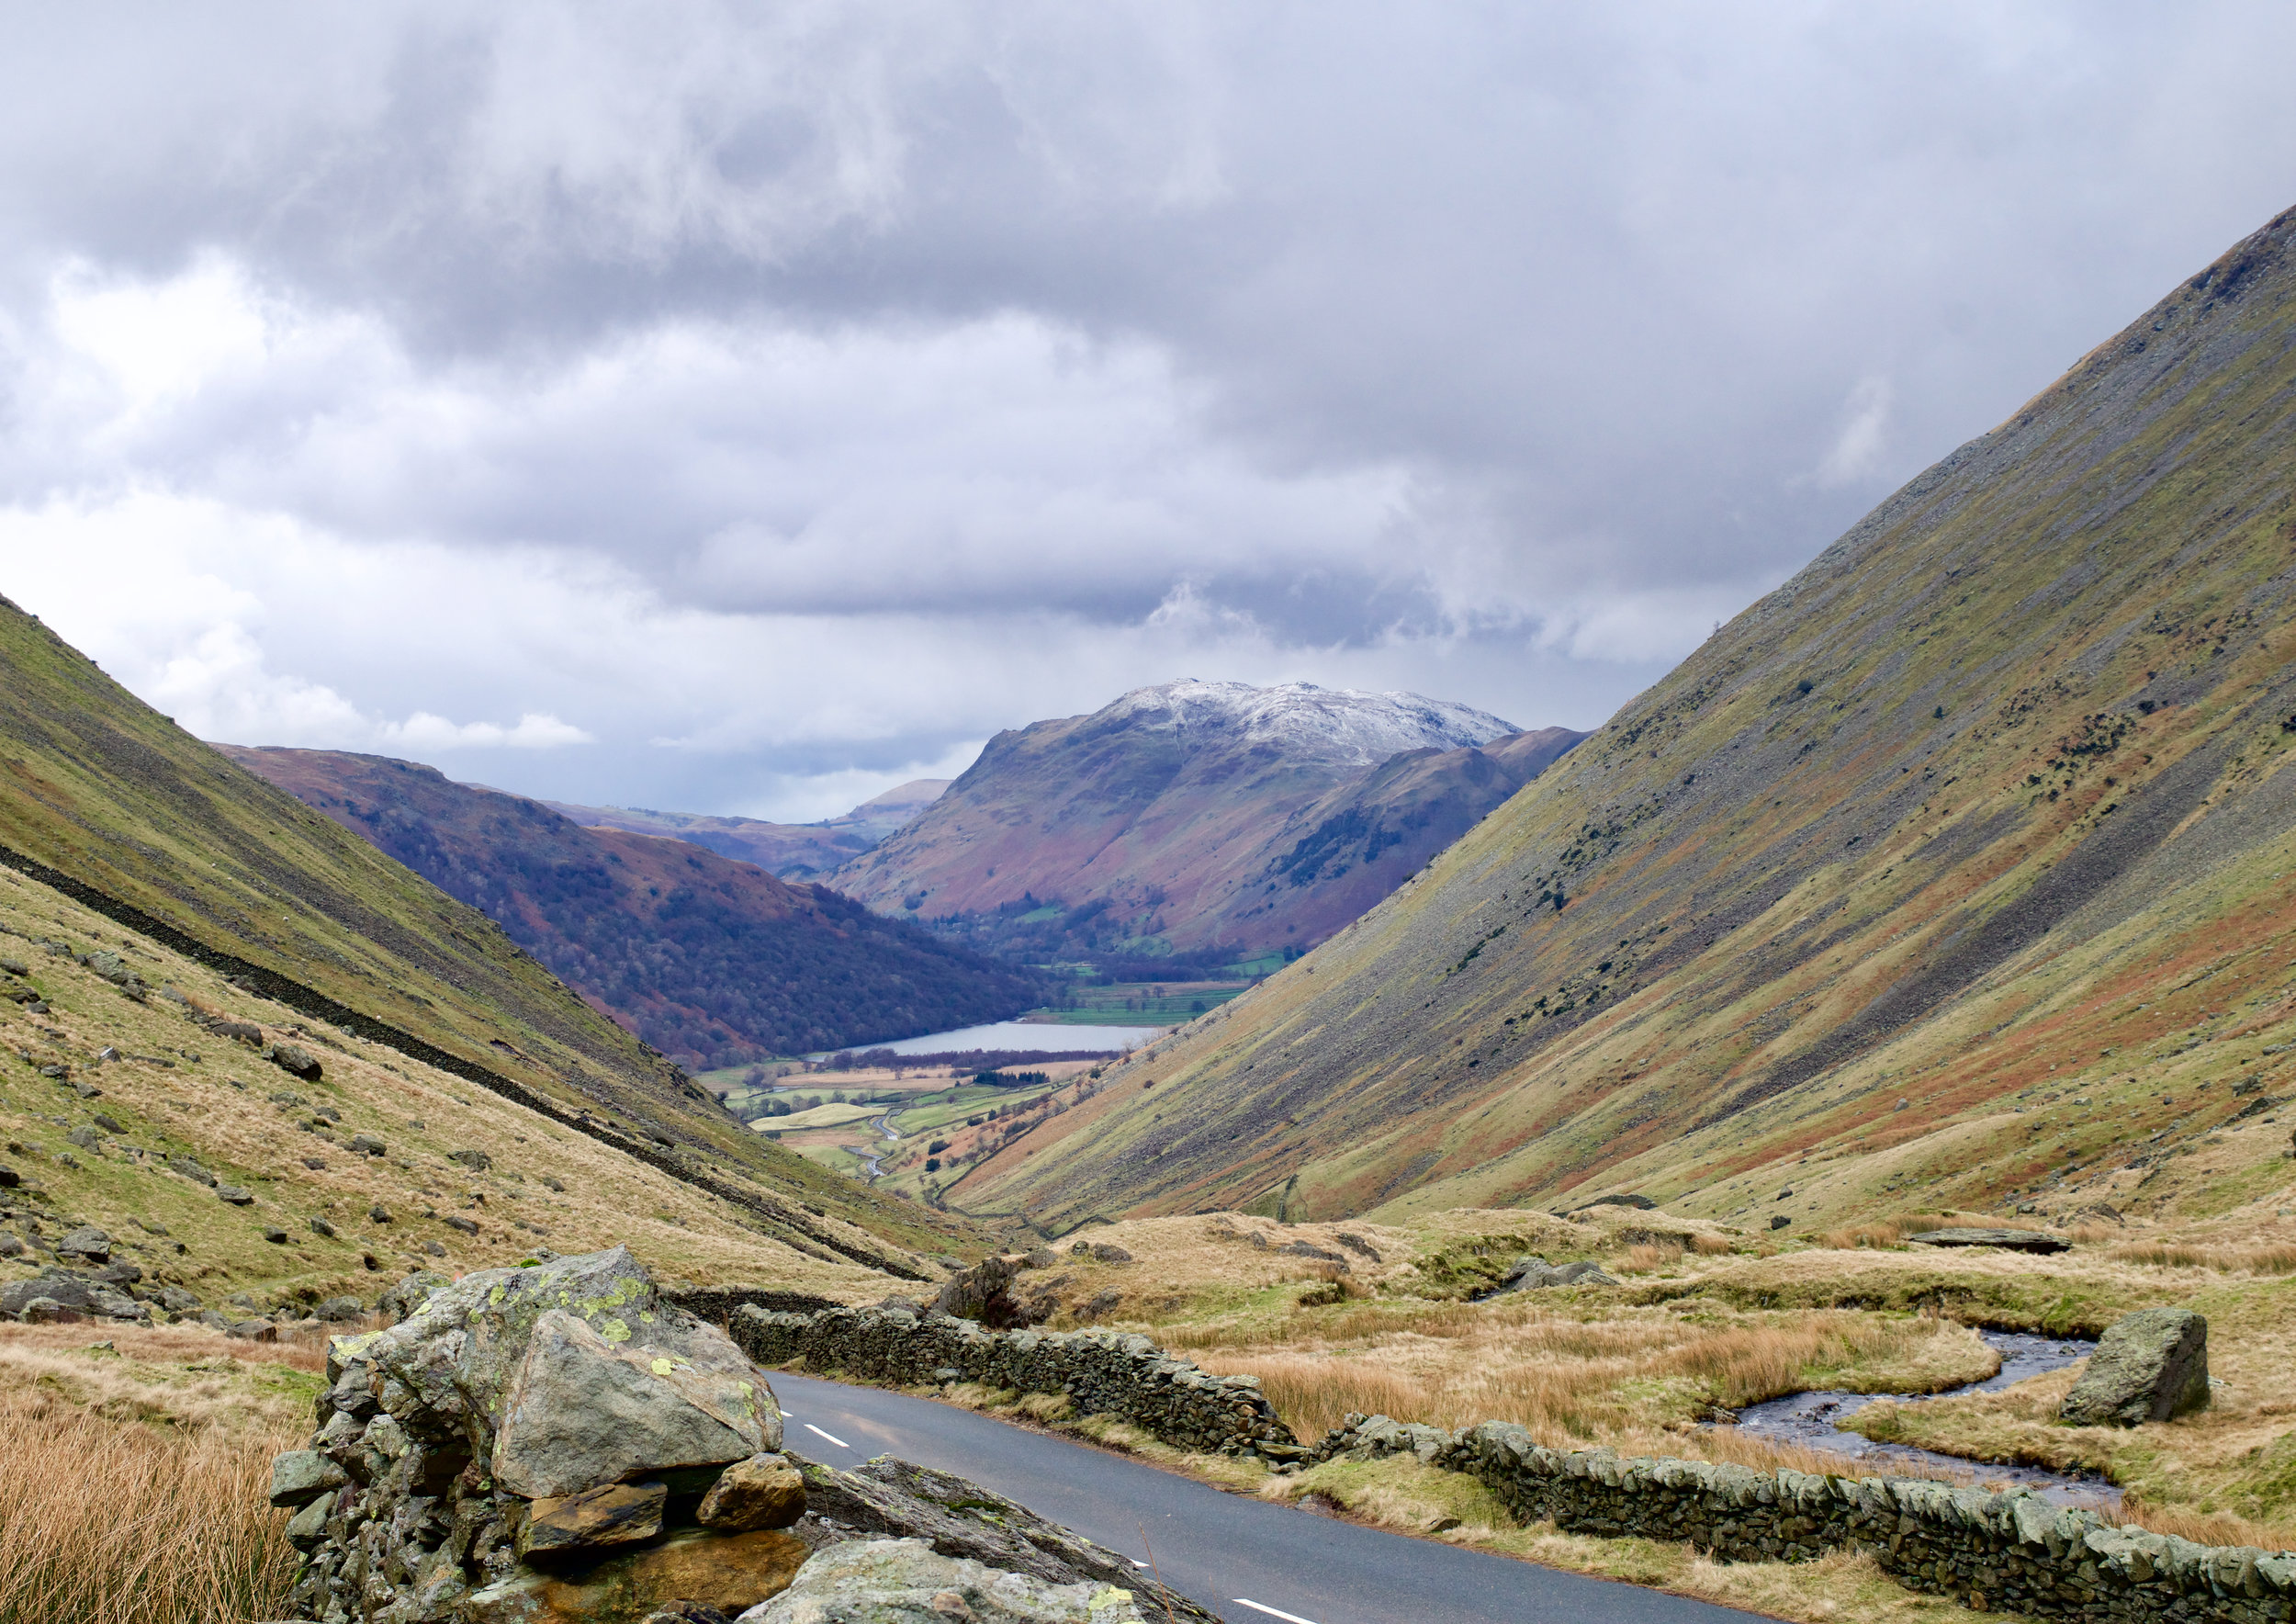 LOOKING DOWN OVER KIRKSTONE PASS